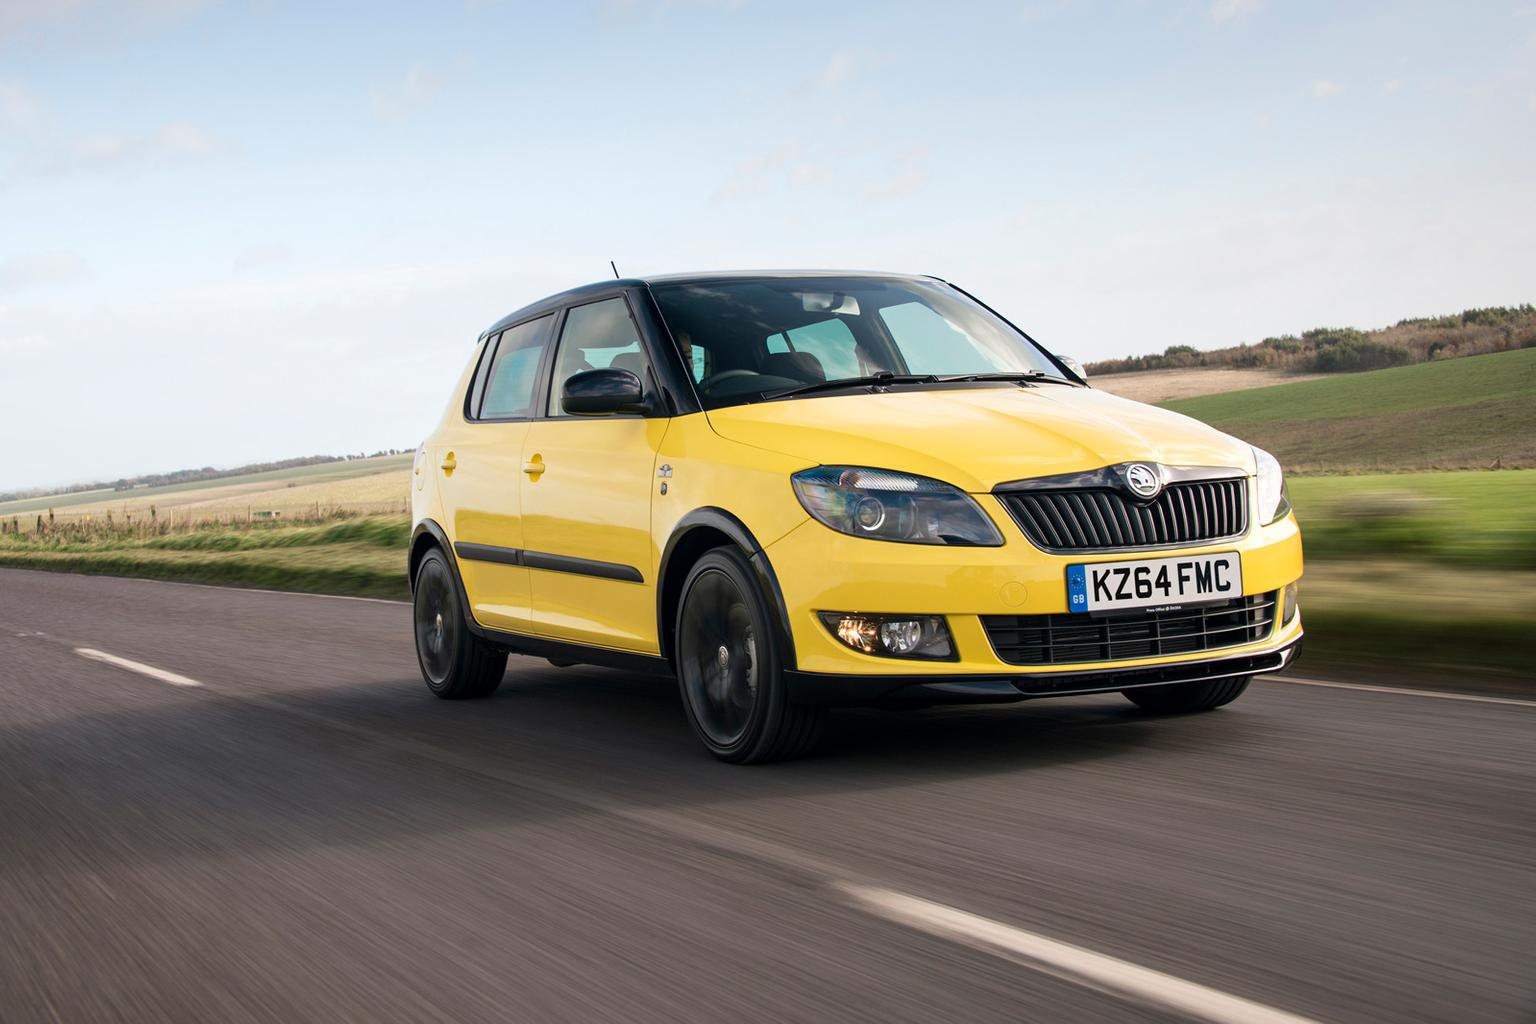 News round-up: VW announces new diesel and Skoda offers VAT cut